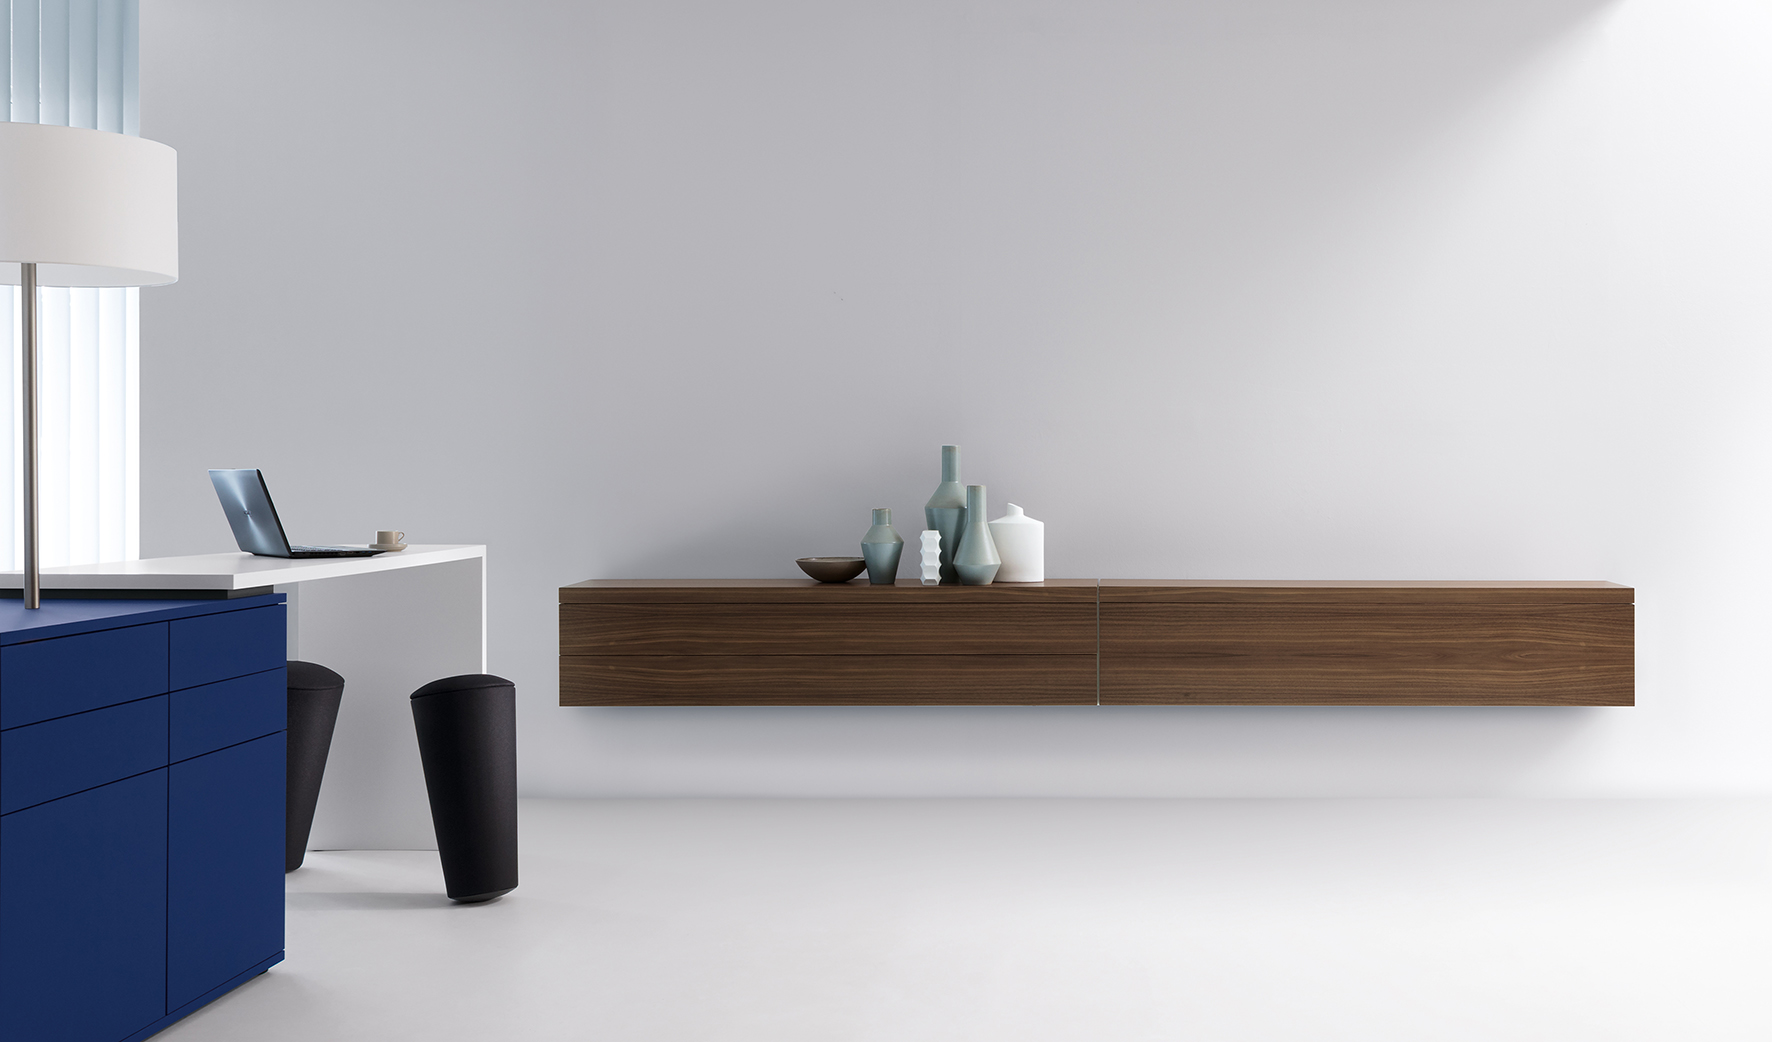 Design Kast Hout : Luudo design furniture basic cap kasten serie architectenweb